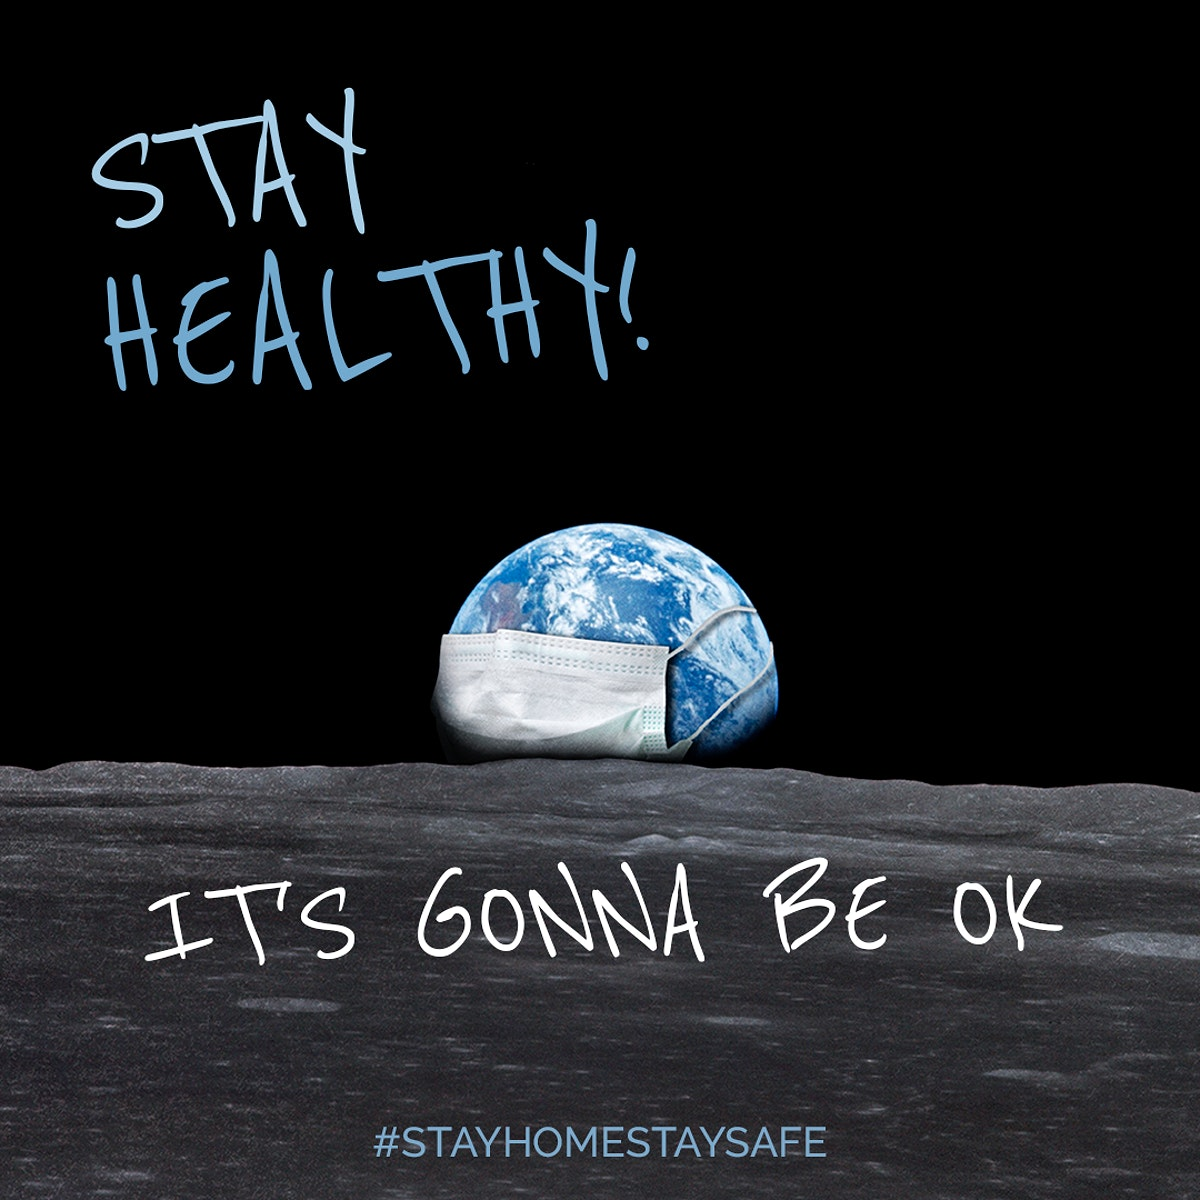 Stay healthy, it's gonna be ok during coronavirus pandemic social template mockup